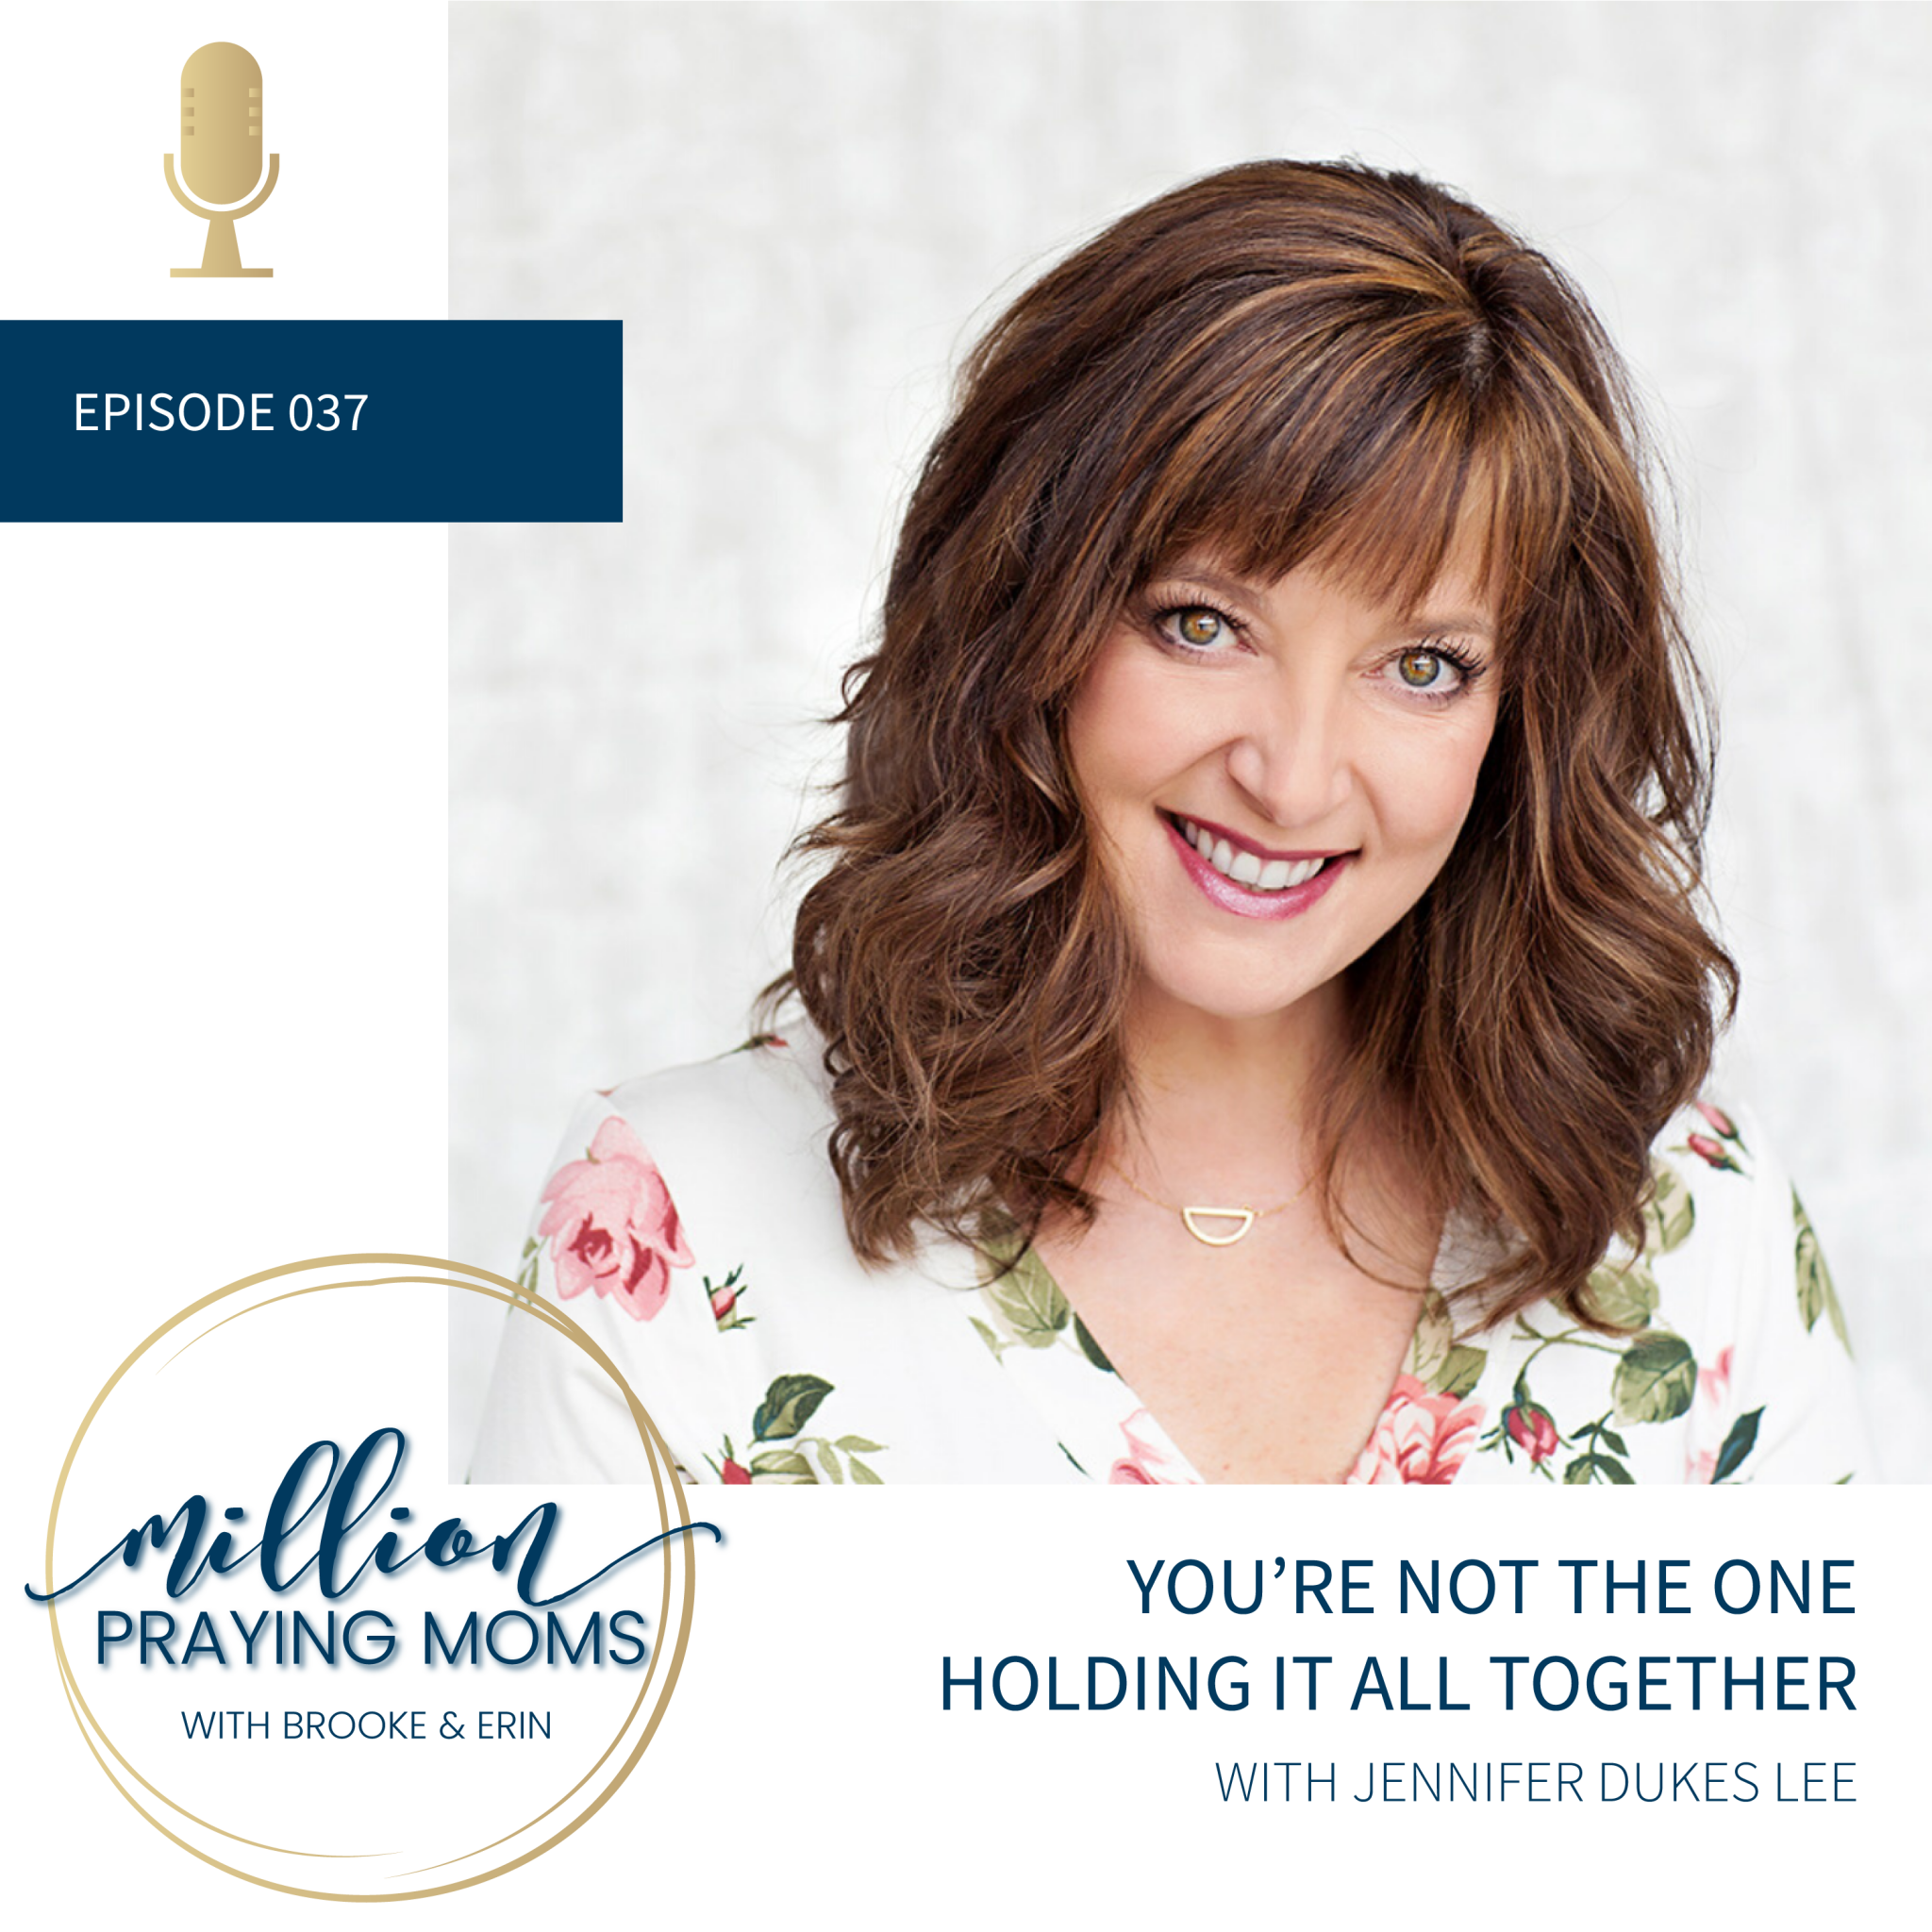 #037: You're Not the One Holding it All Together